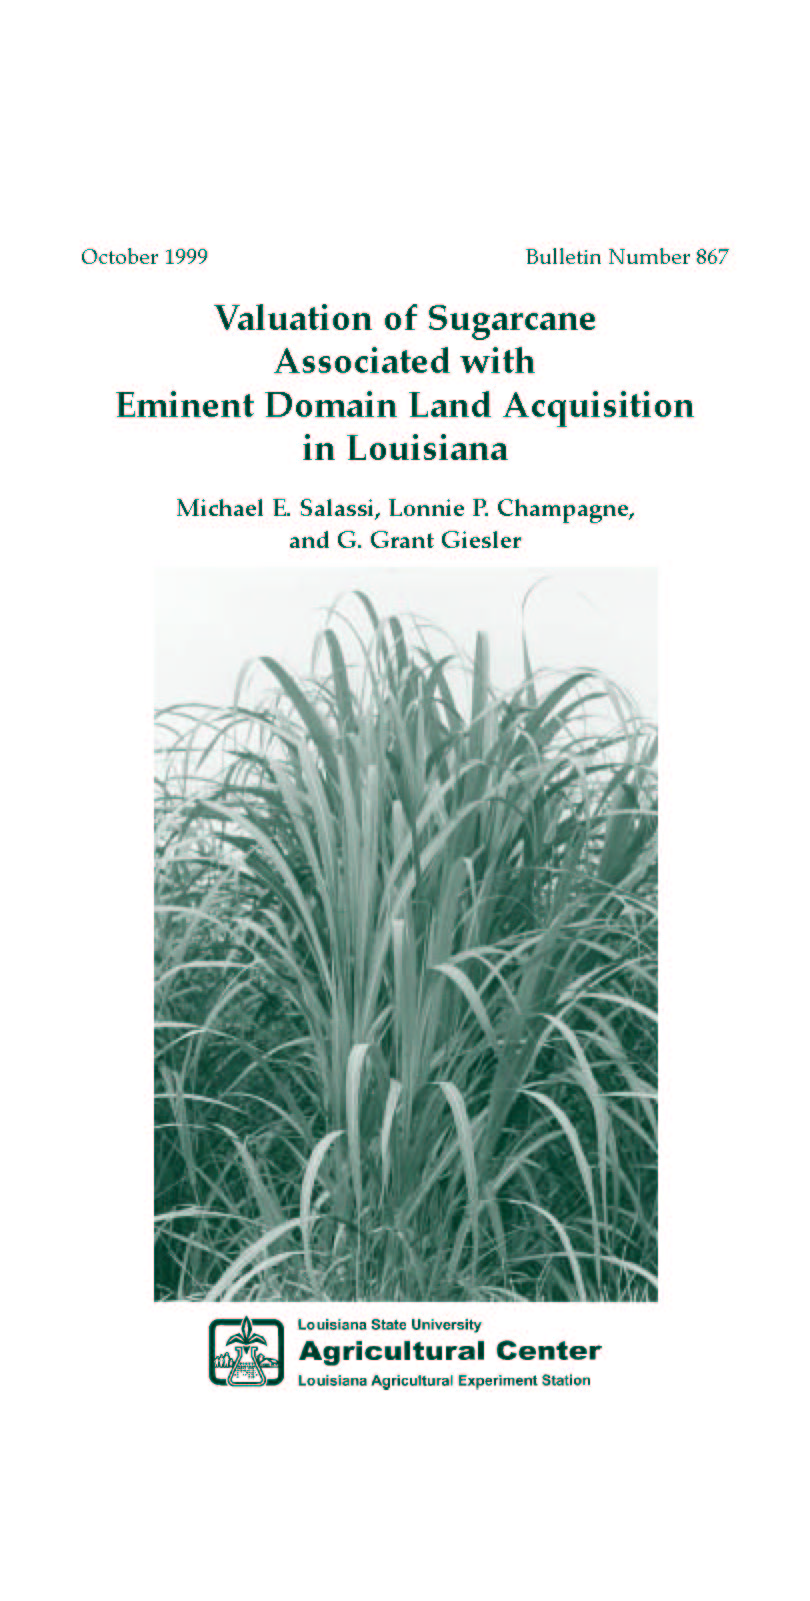 Valuation of Sugarcane Associated with Eminent Domain Land Acquisition in Louisiana (October 1999)